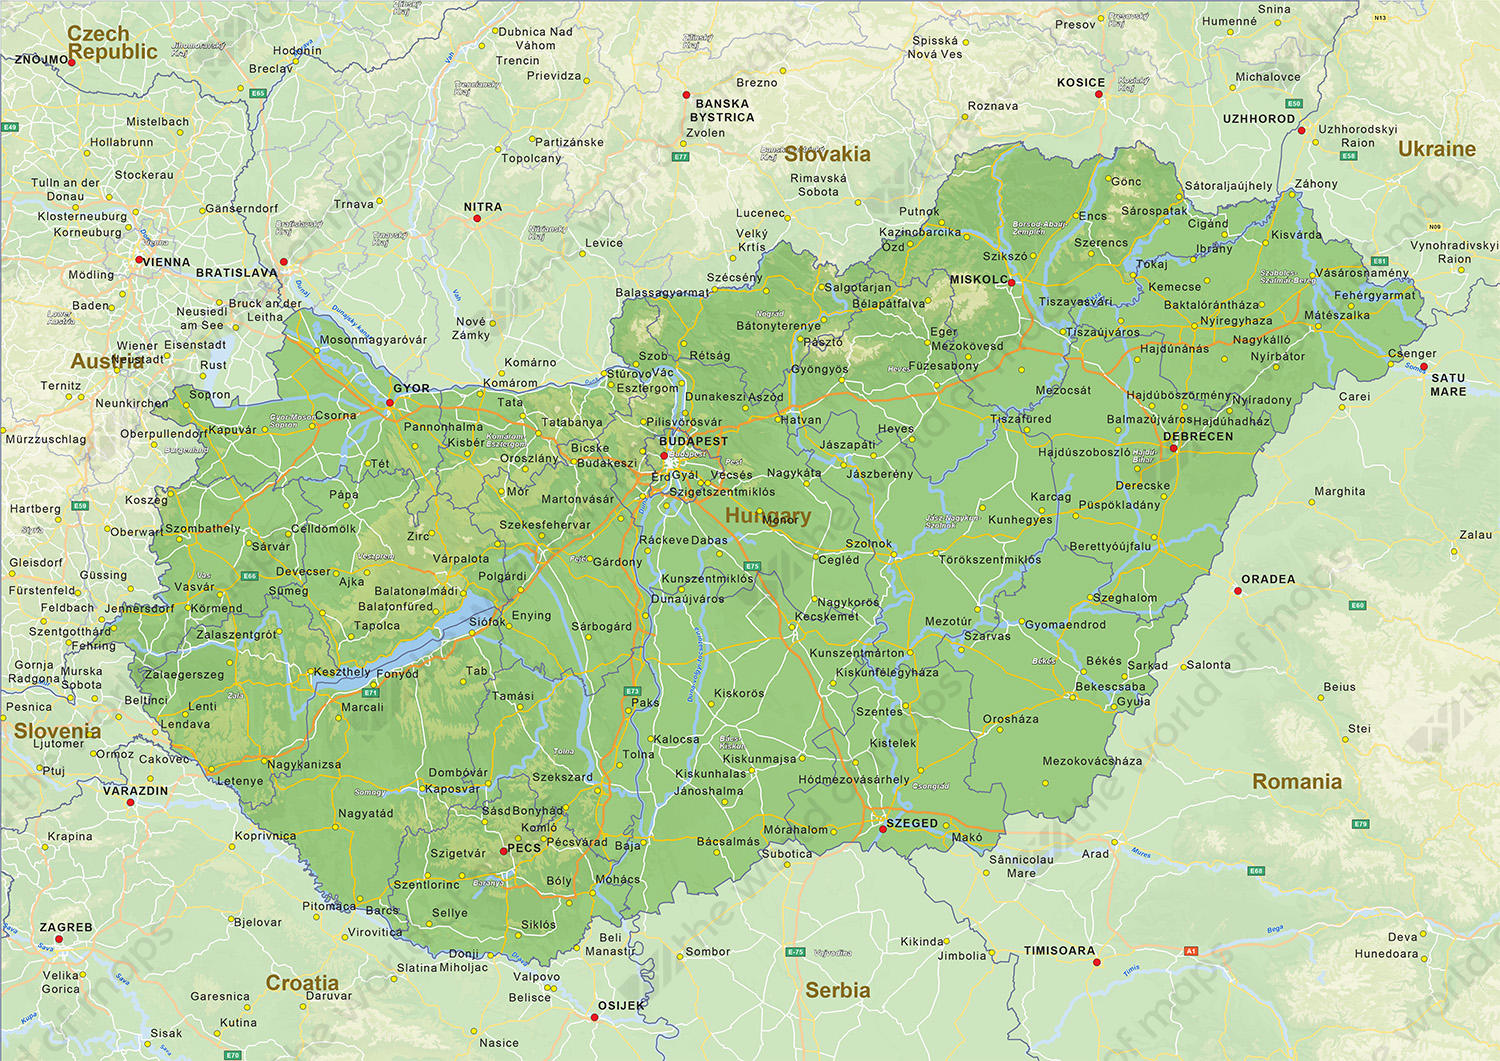 Digital physical map of Hungary 1439 The World of Mapscom